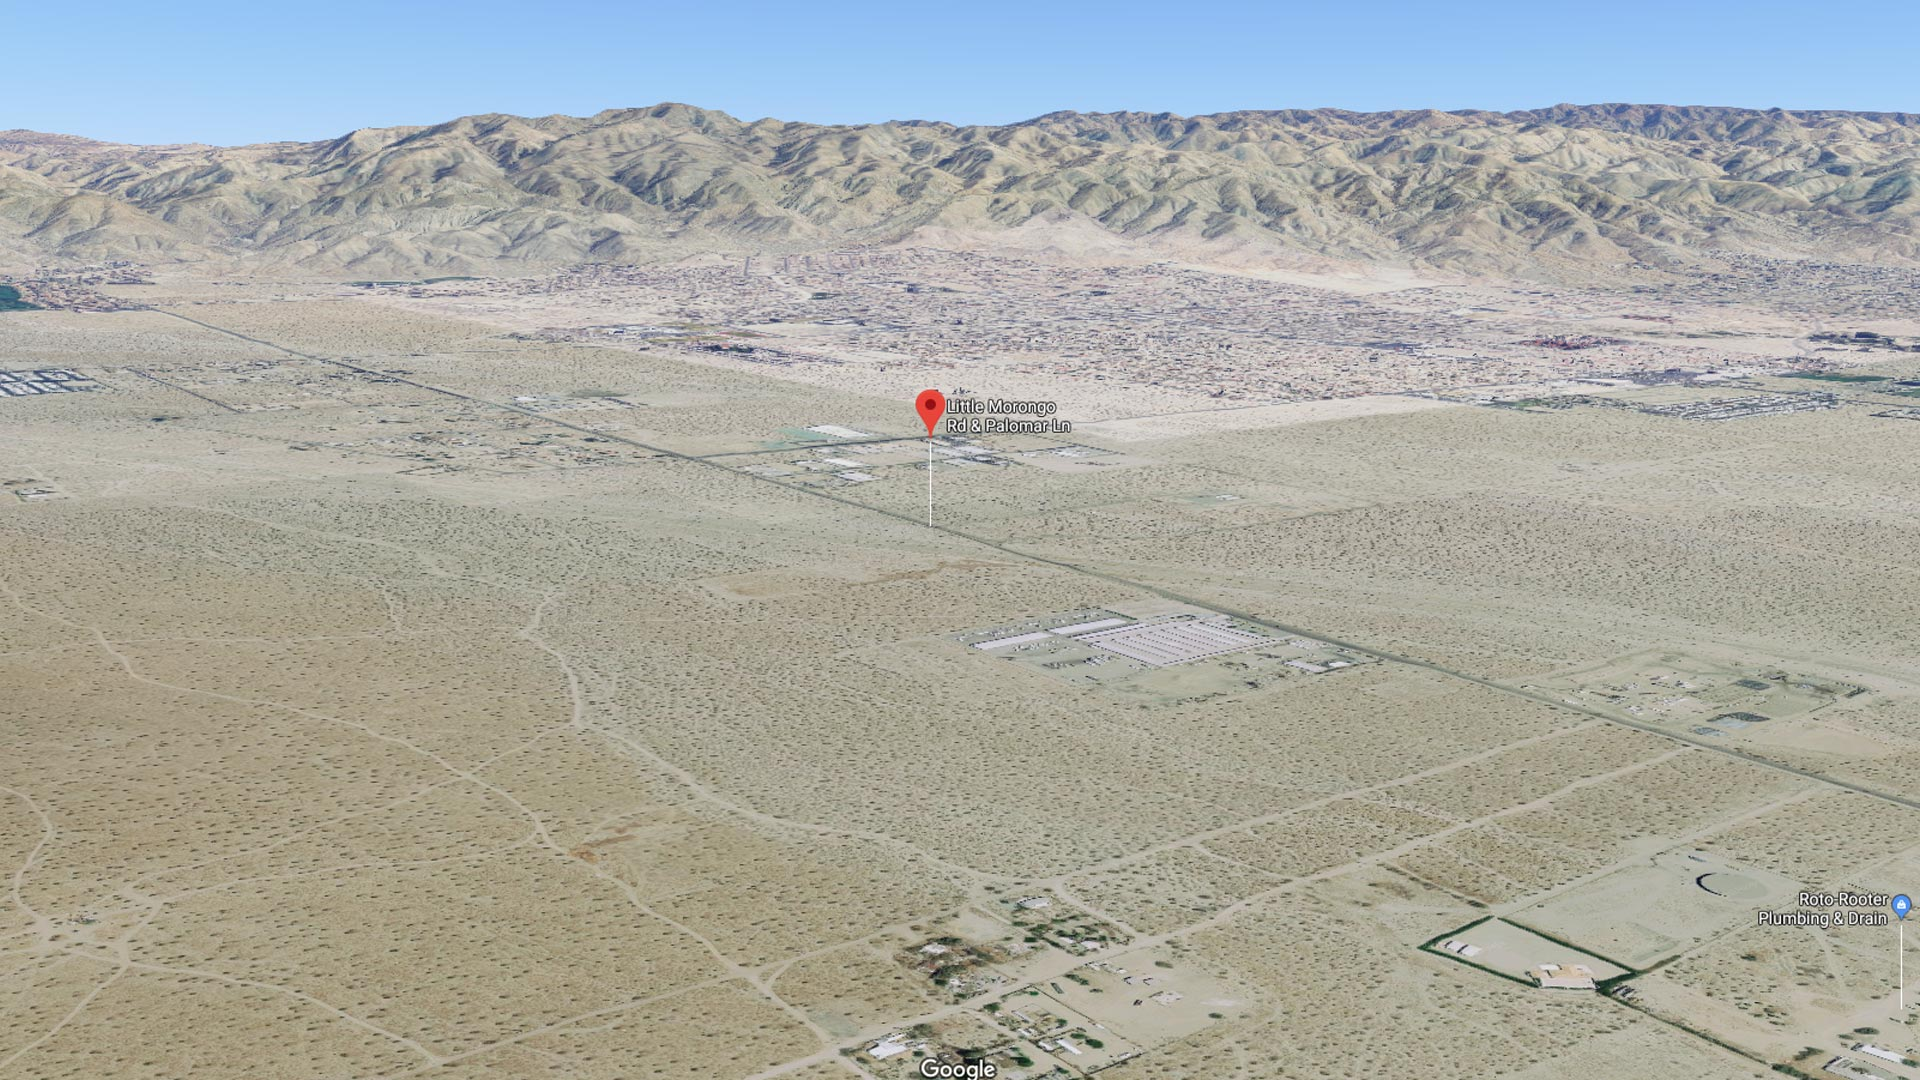 0.29 AC Zoned Industrial for Cultivation, Desert Hot Springs, CA